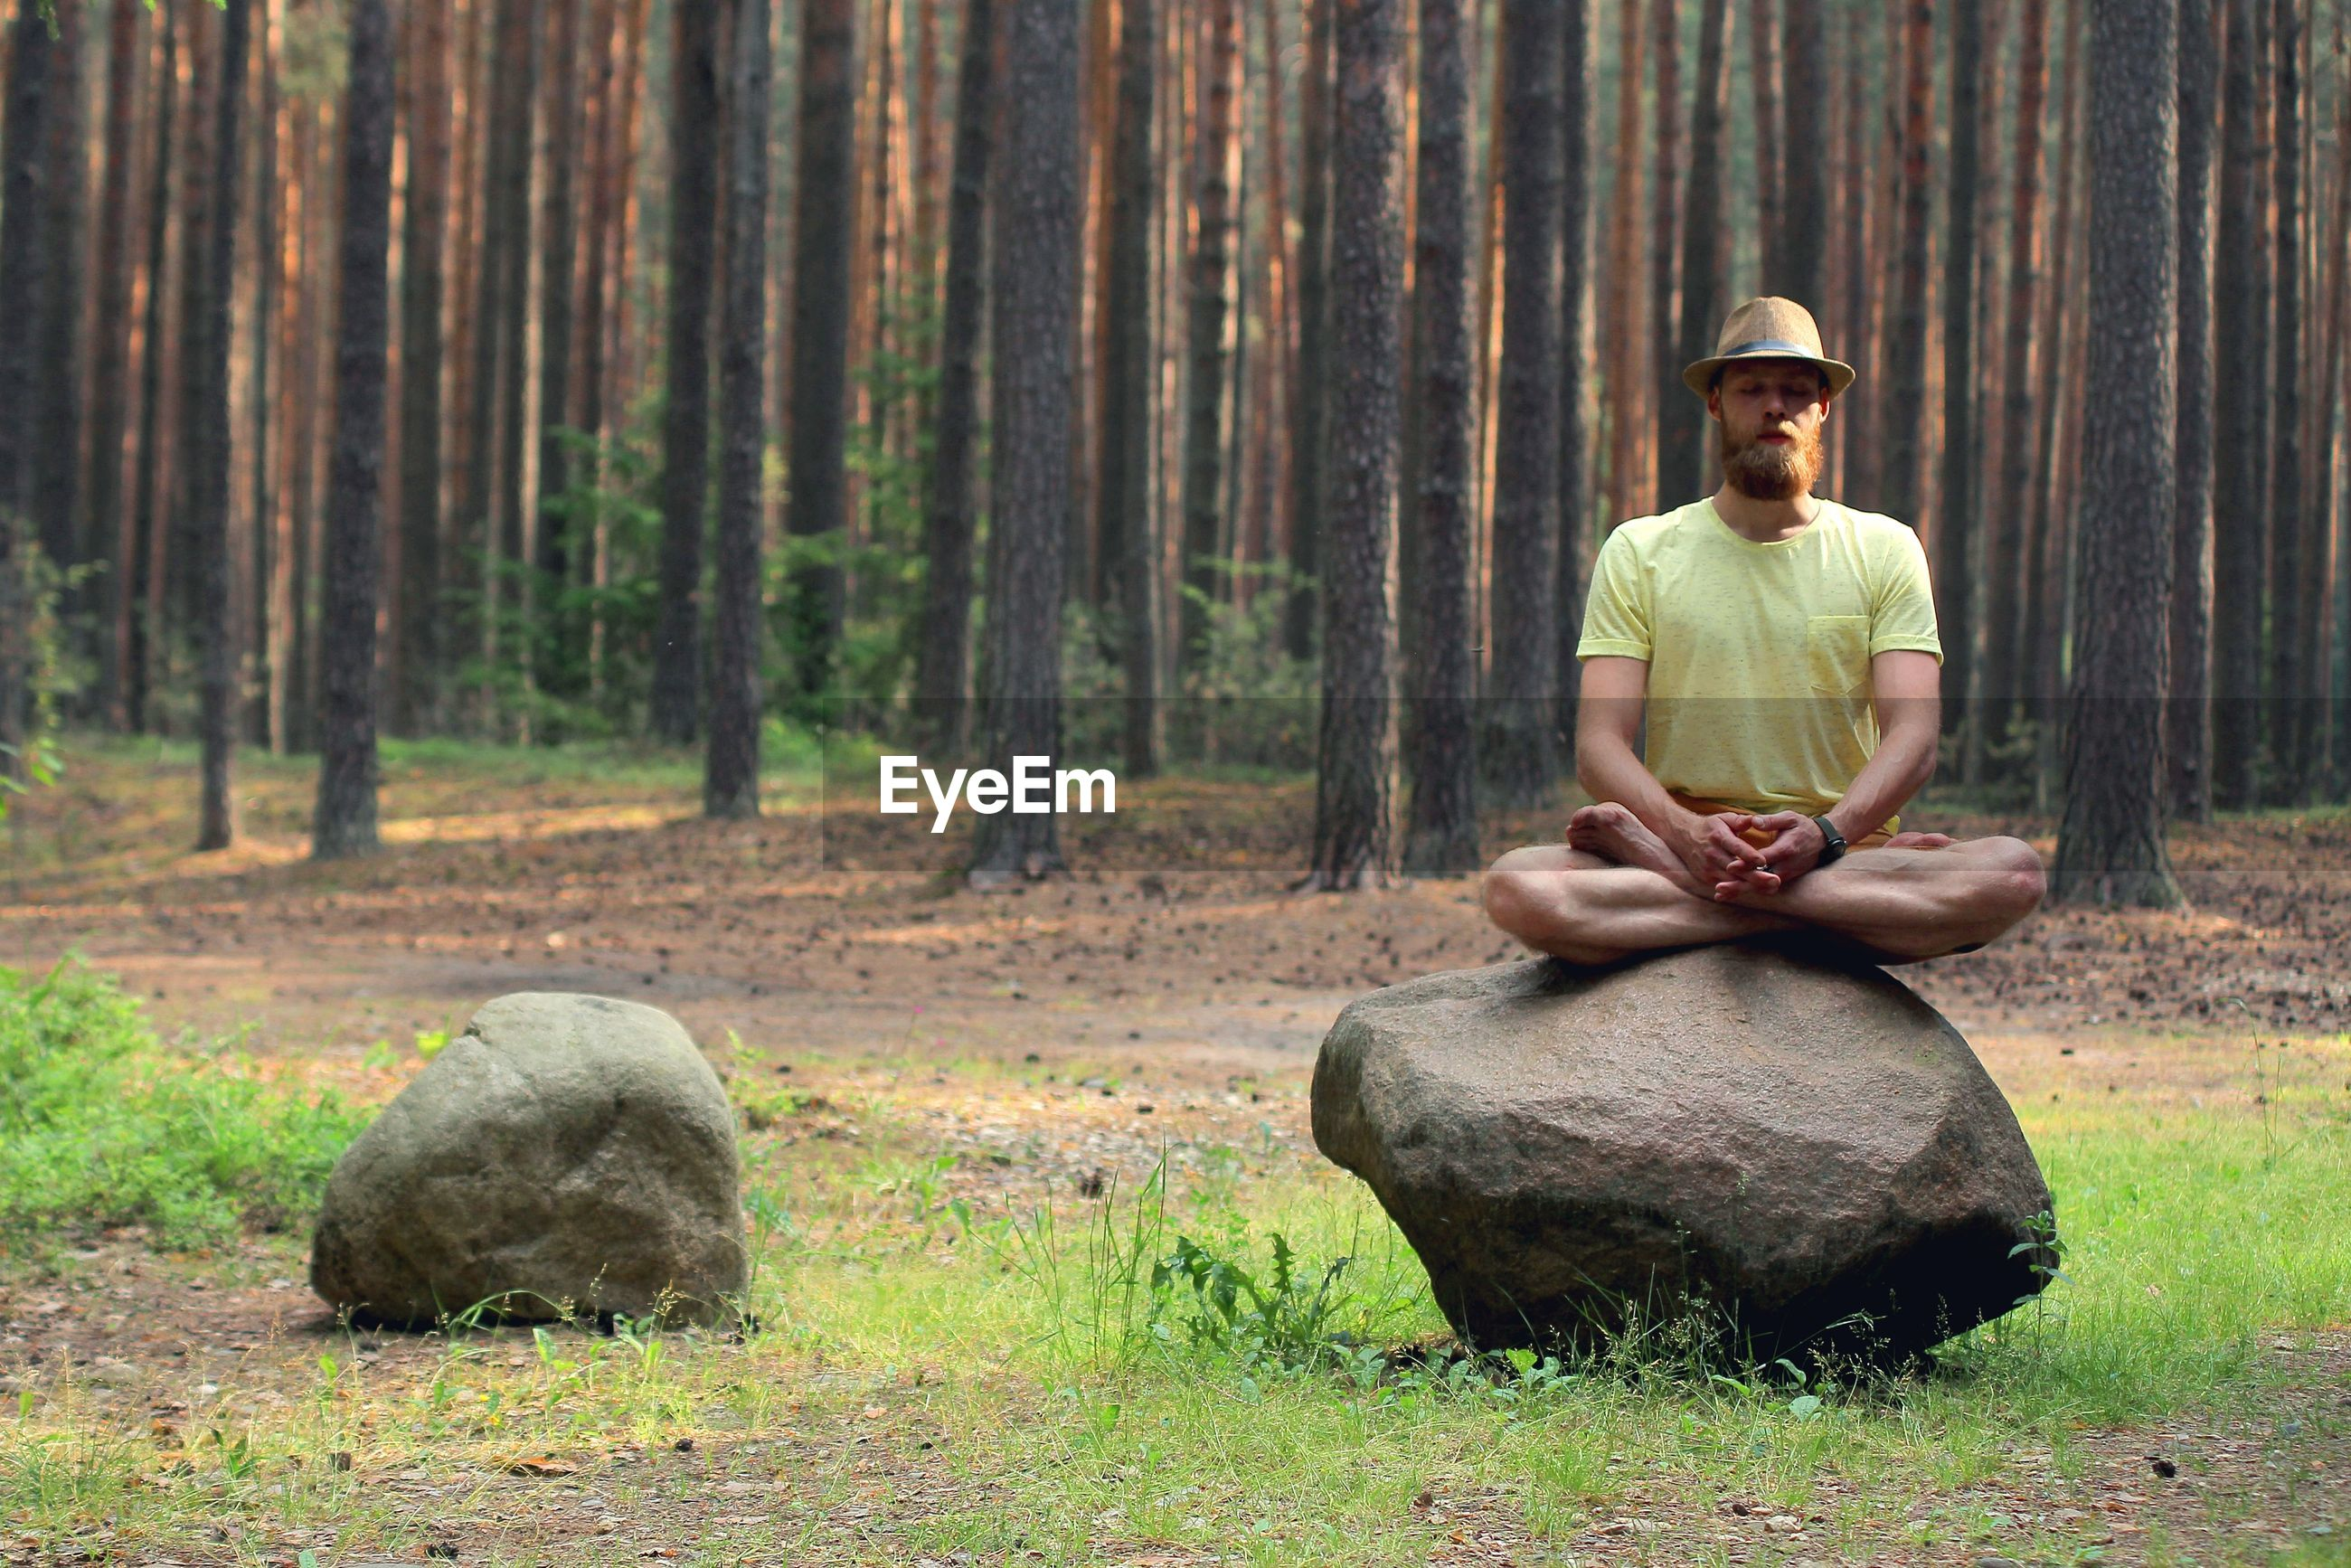 Man doing yoga on rock at forest